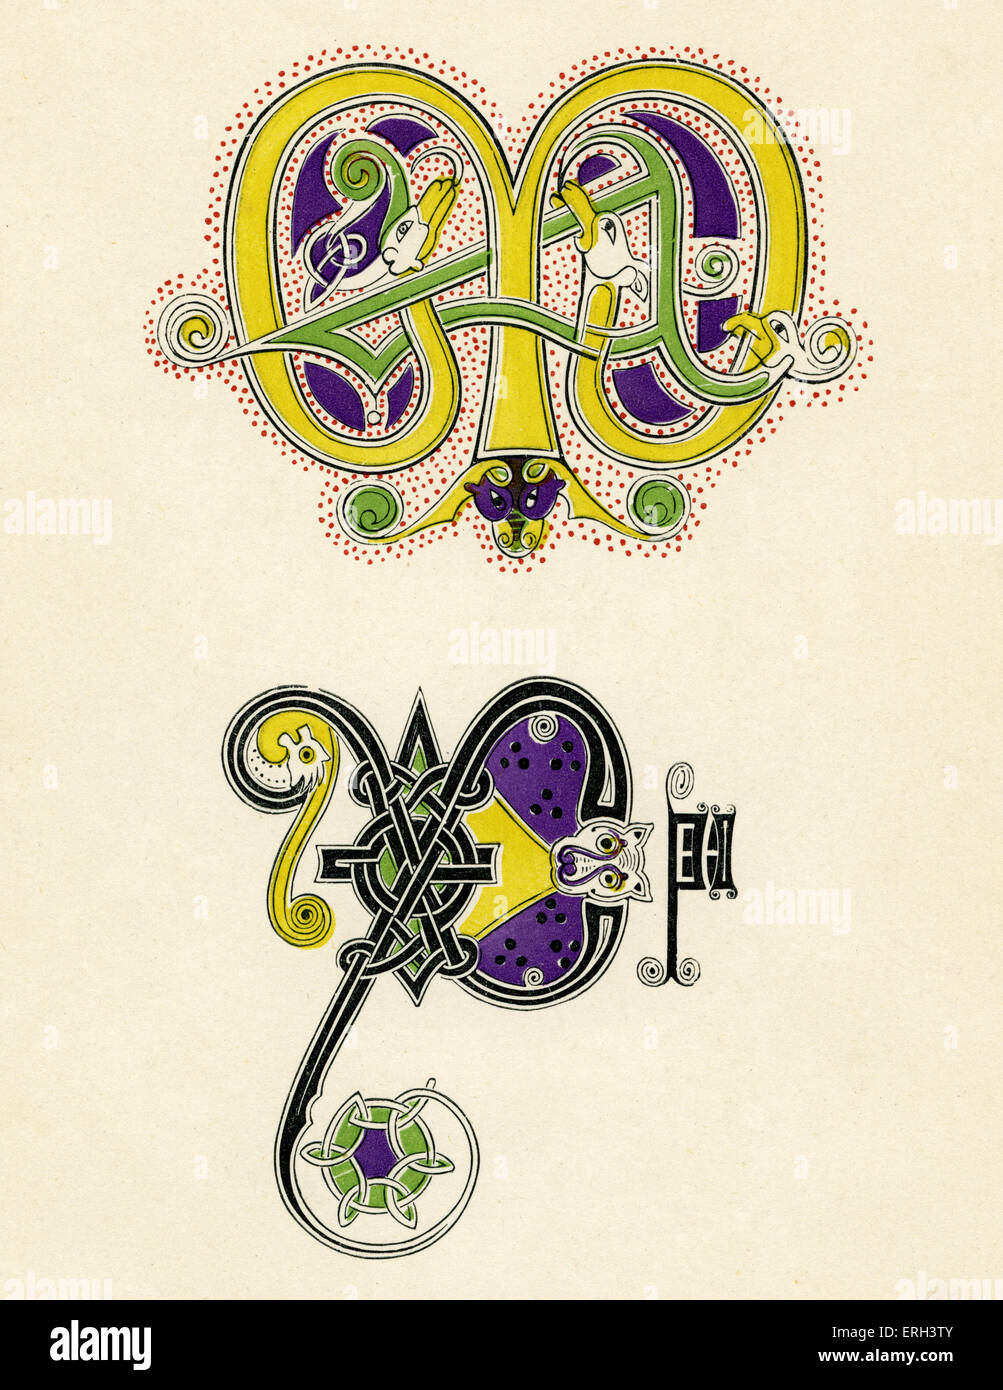 Seventh- and eighth-century monograms. (1886 source). Illuminated letters - Stock Image